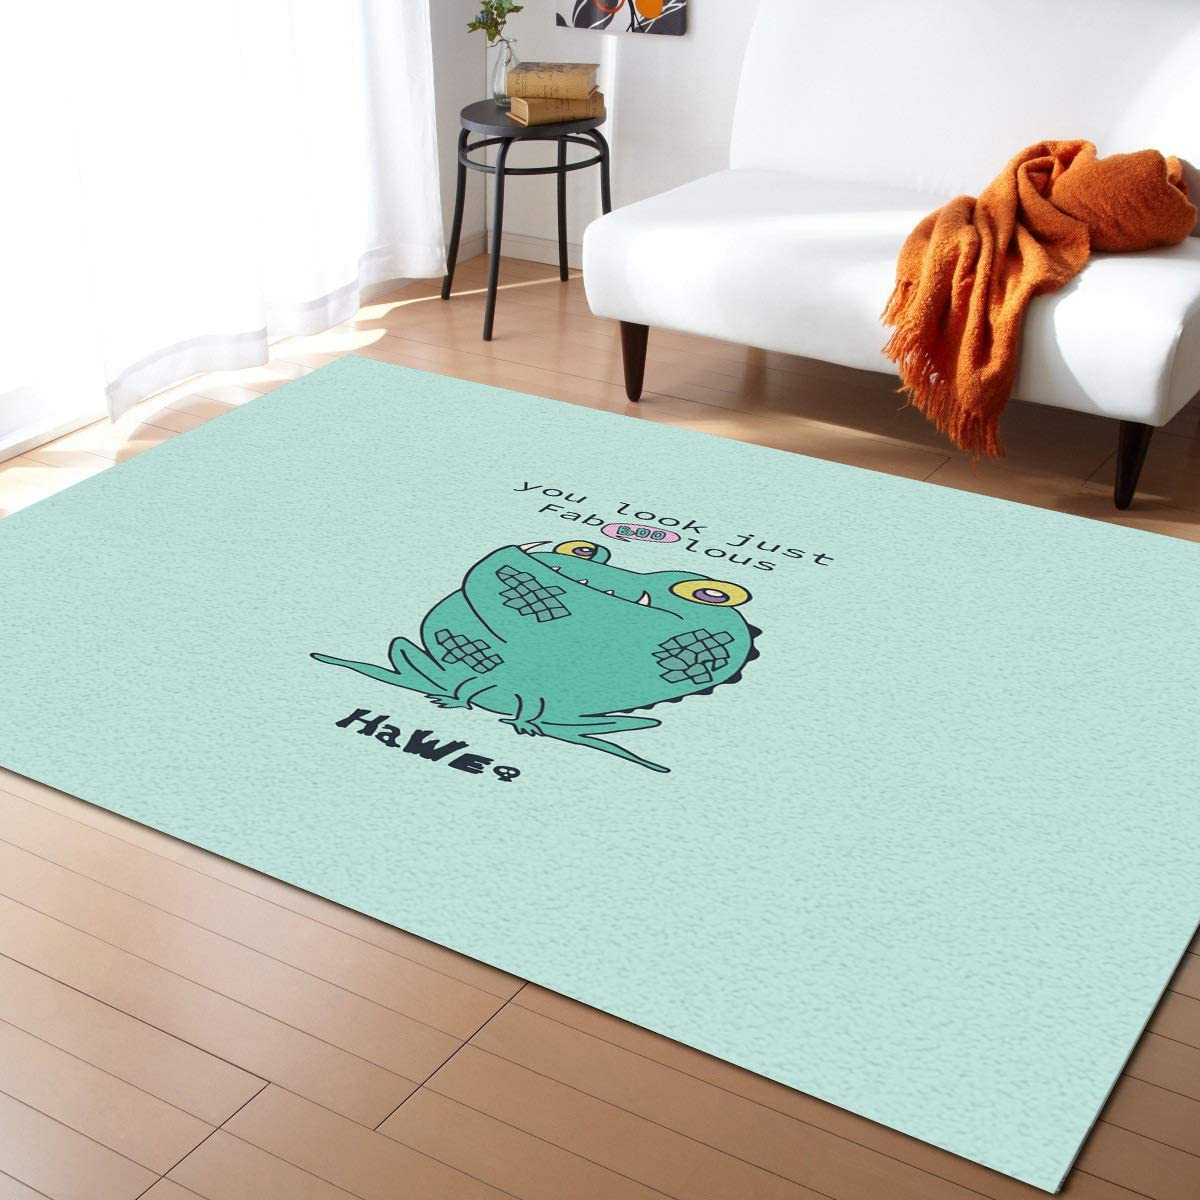 Contemporary Area Rugs for New popularity Bedroom 4'x6' Room Living Kids - Online limited product